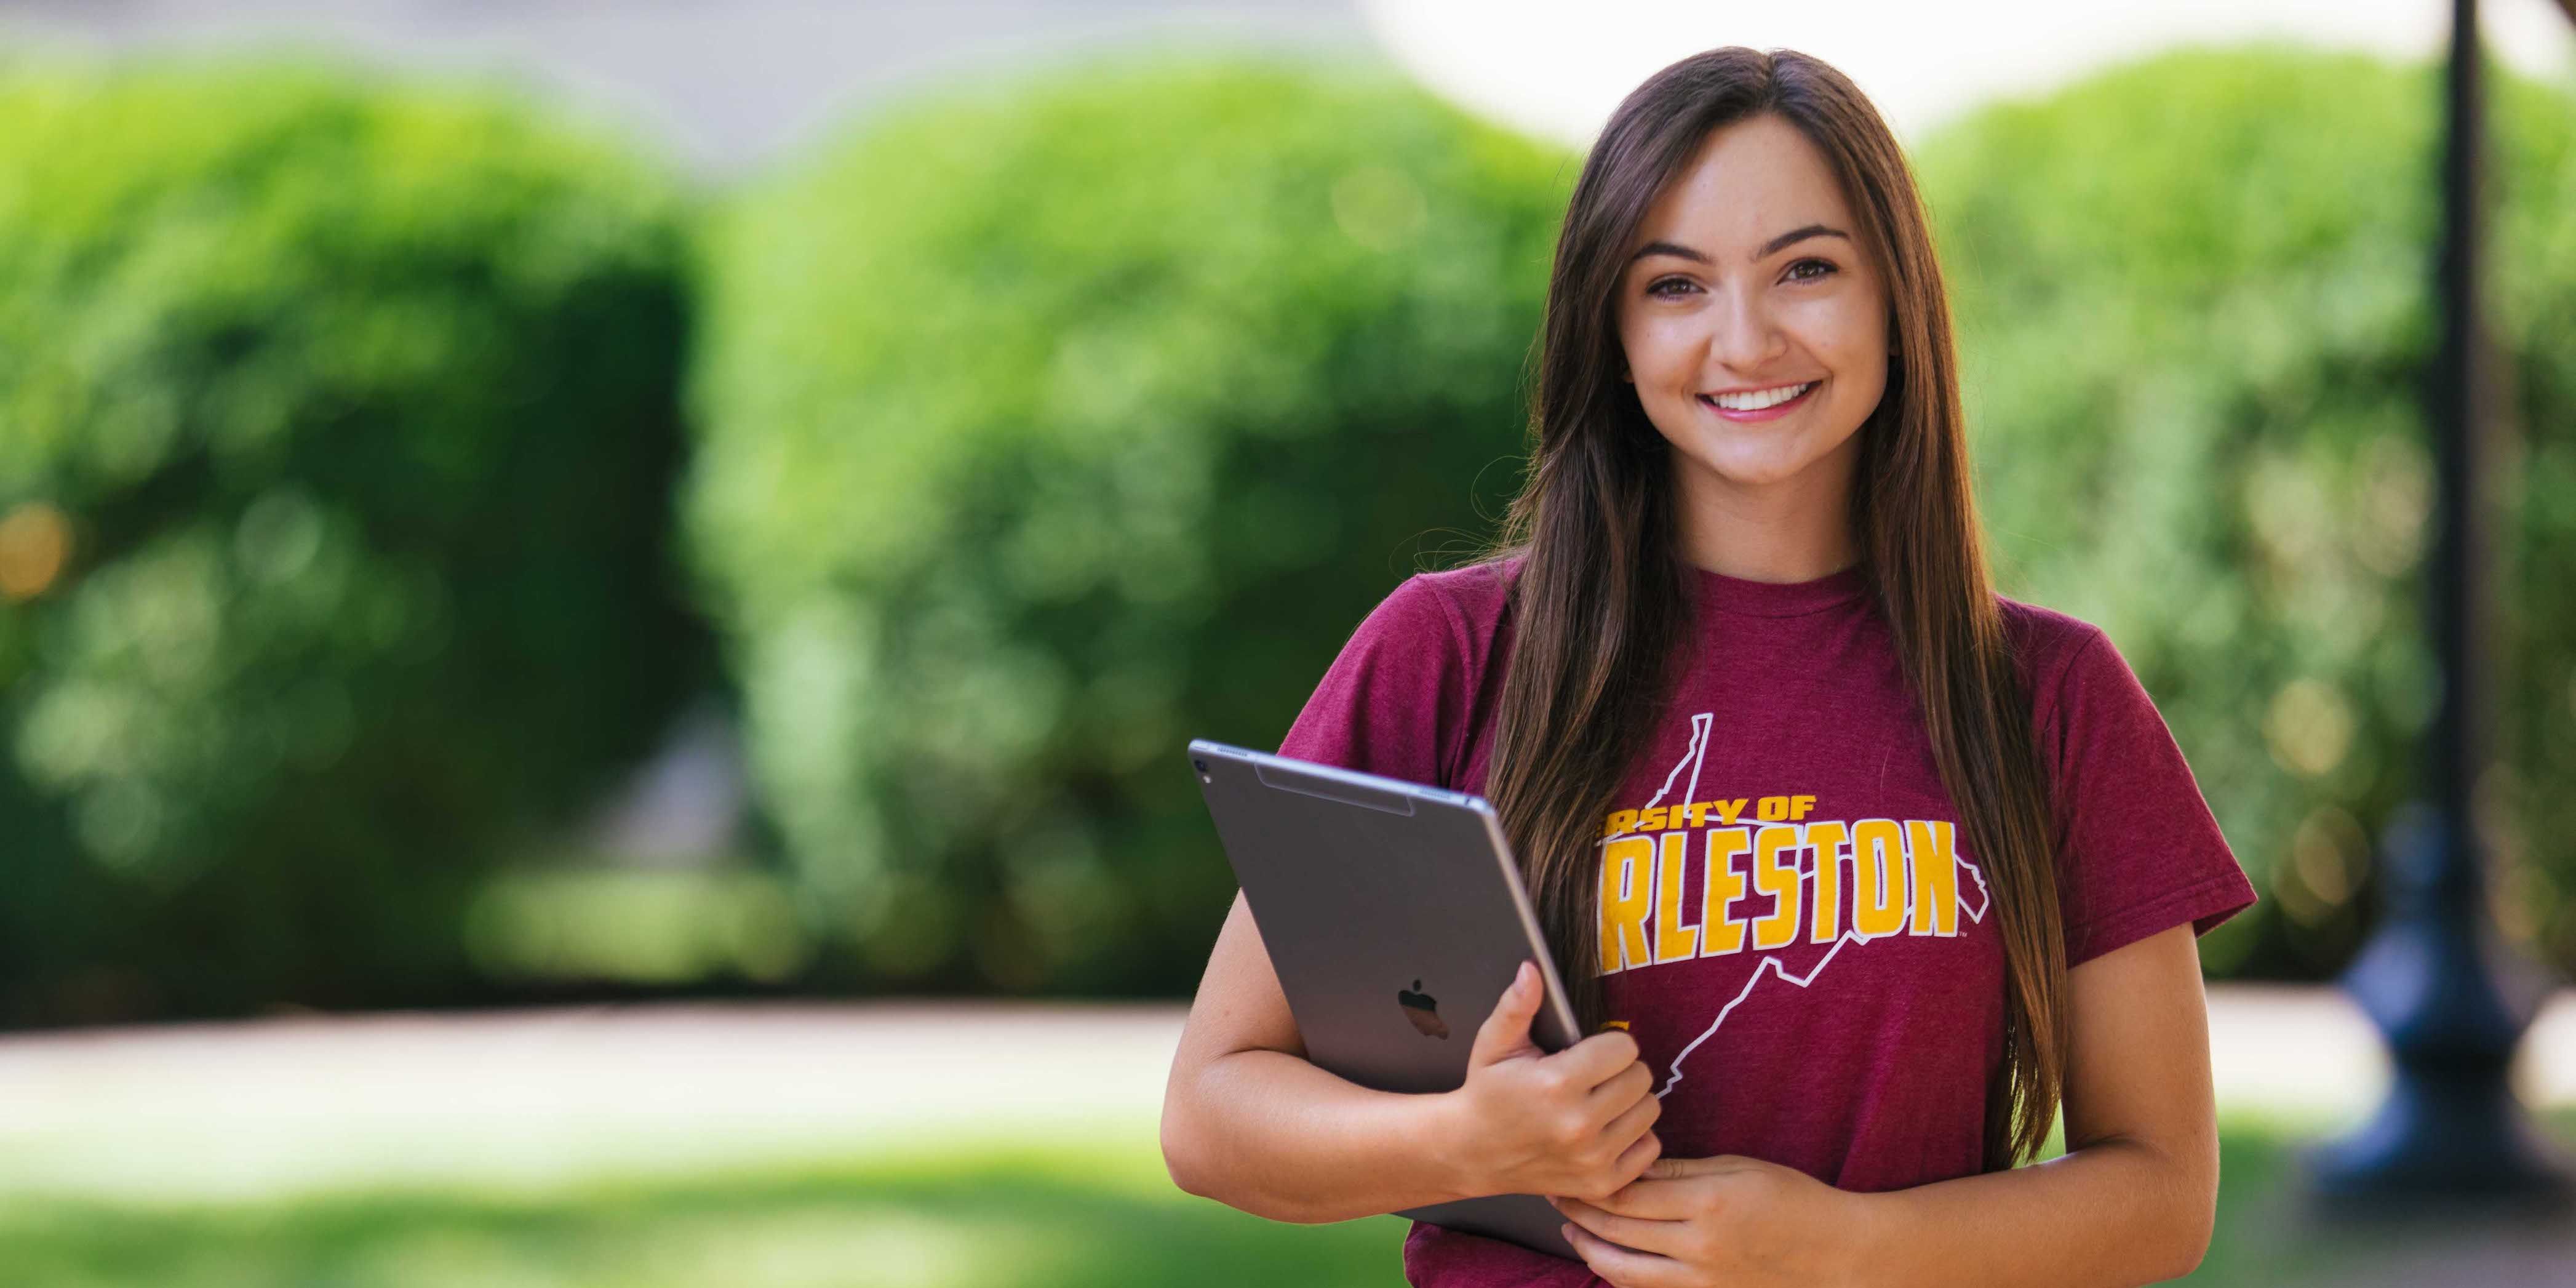 smiling female student posing with tablet